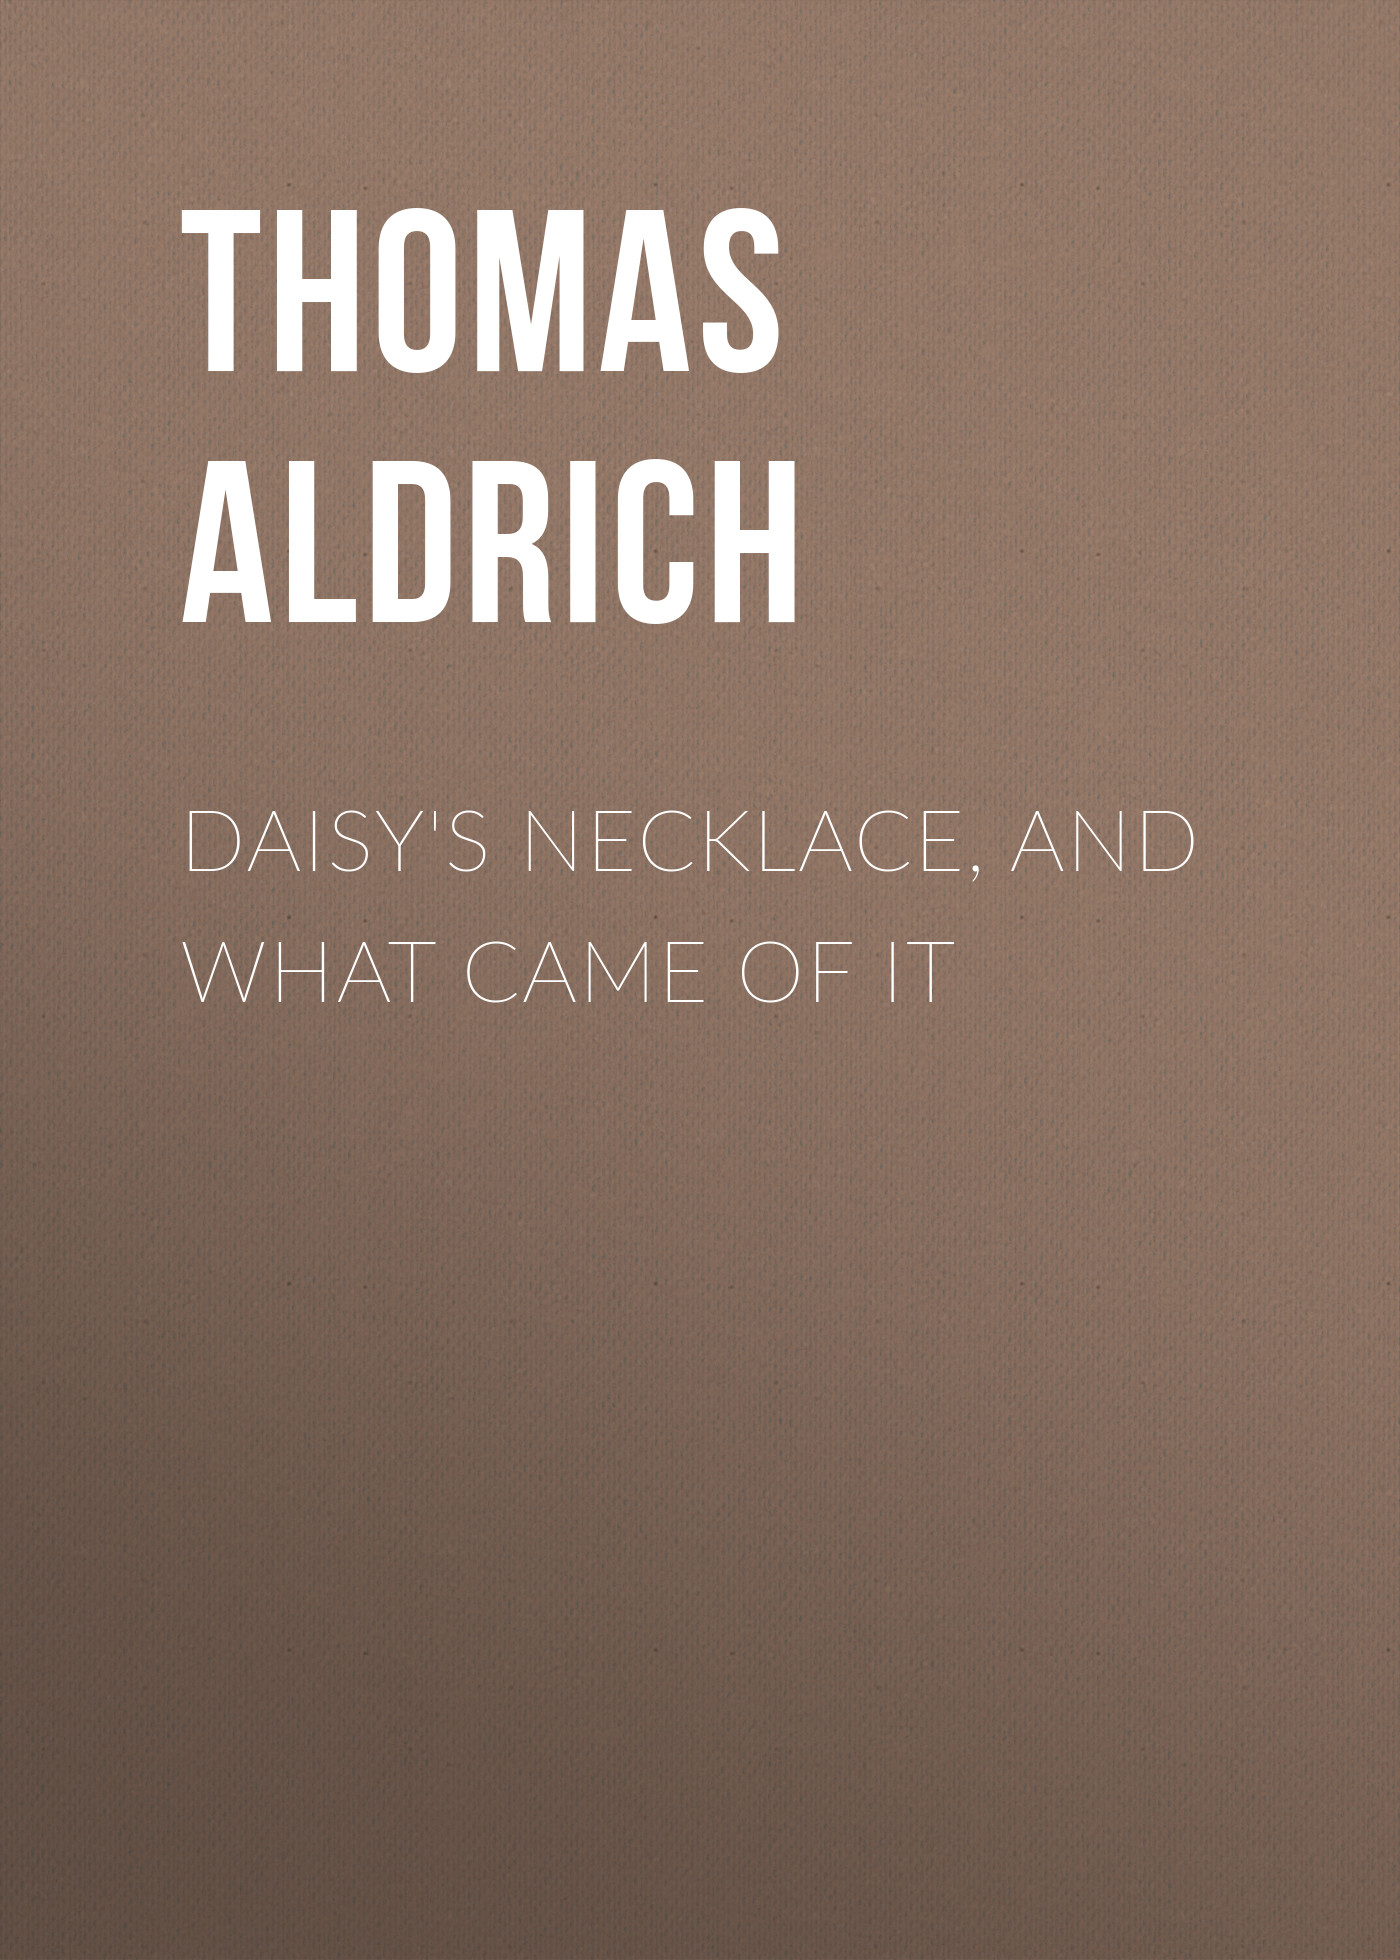 Aldrich Thomas Bailey Daisy's Necklace, and What Came of It faux pearl rhinestone teardrop necklace and earrings